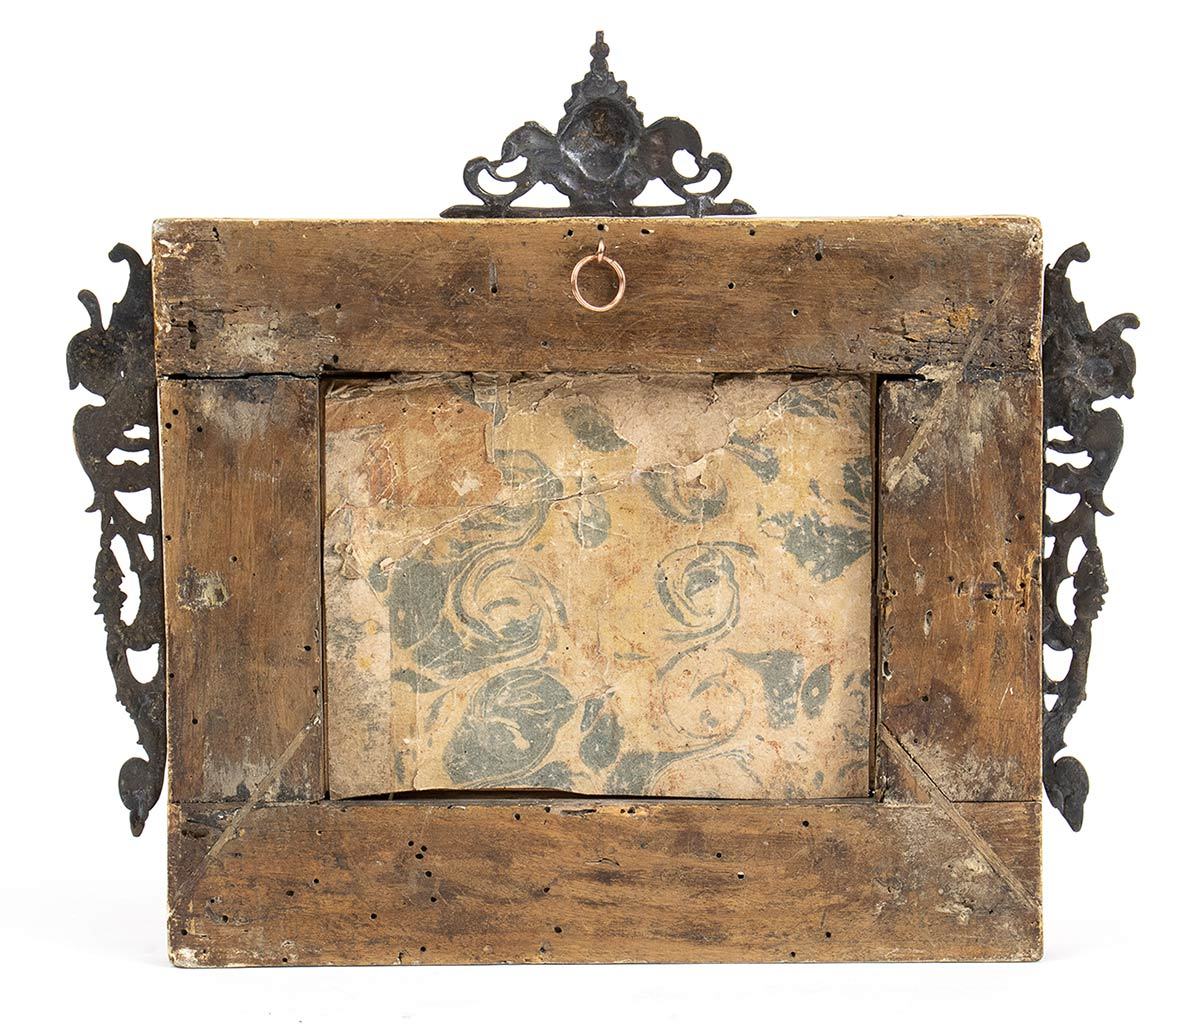 An Italian Mediterranean coral carvings with wooden frame - probably Naples, 18th Century - Image 3 of 3